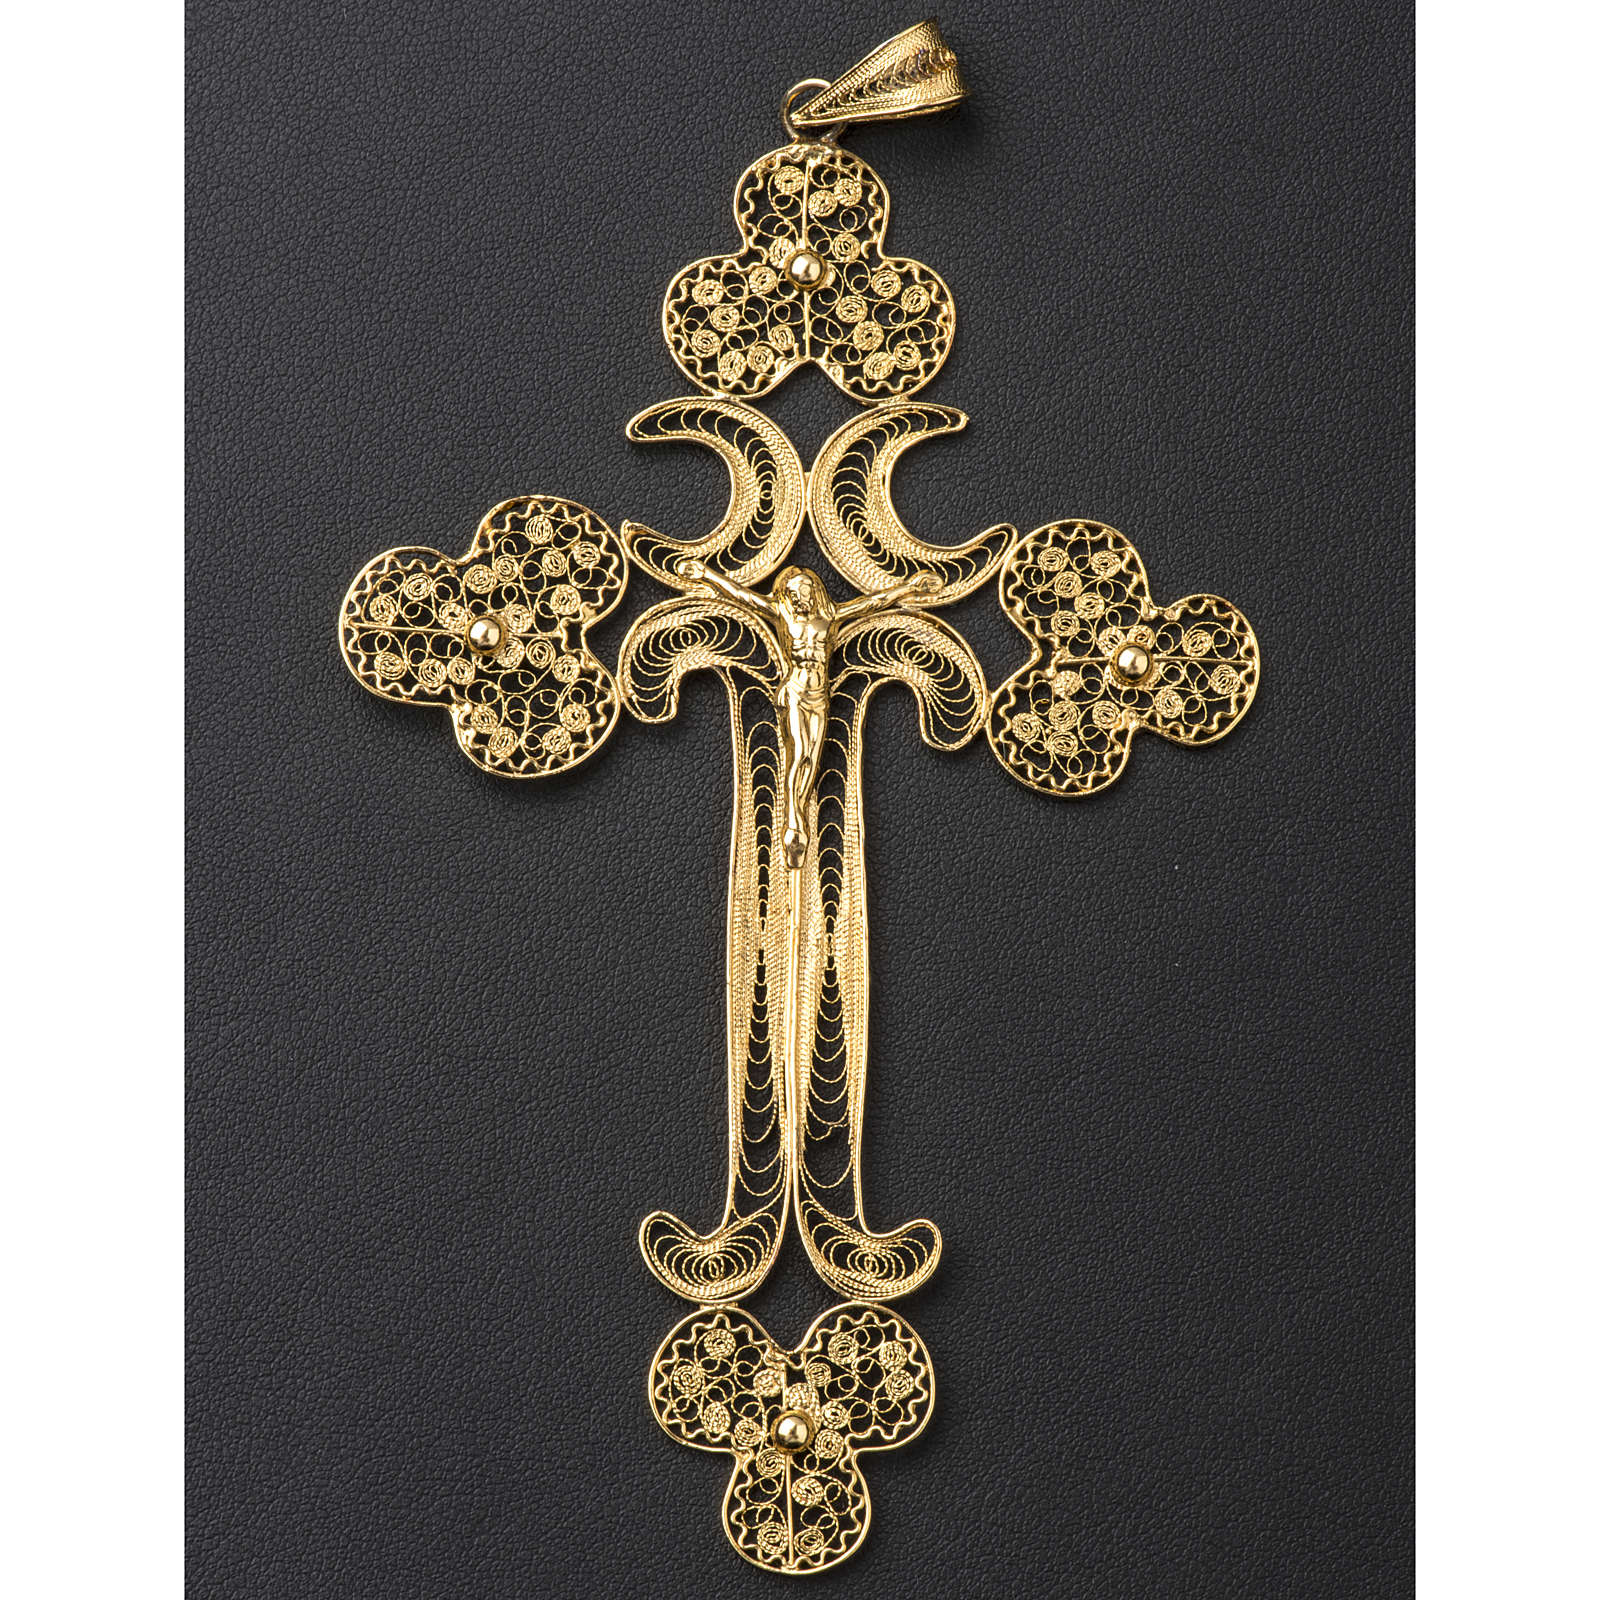 Pectoral Cross in golden silver filigree, Chist's body 3